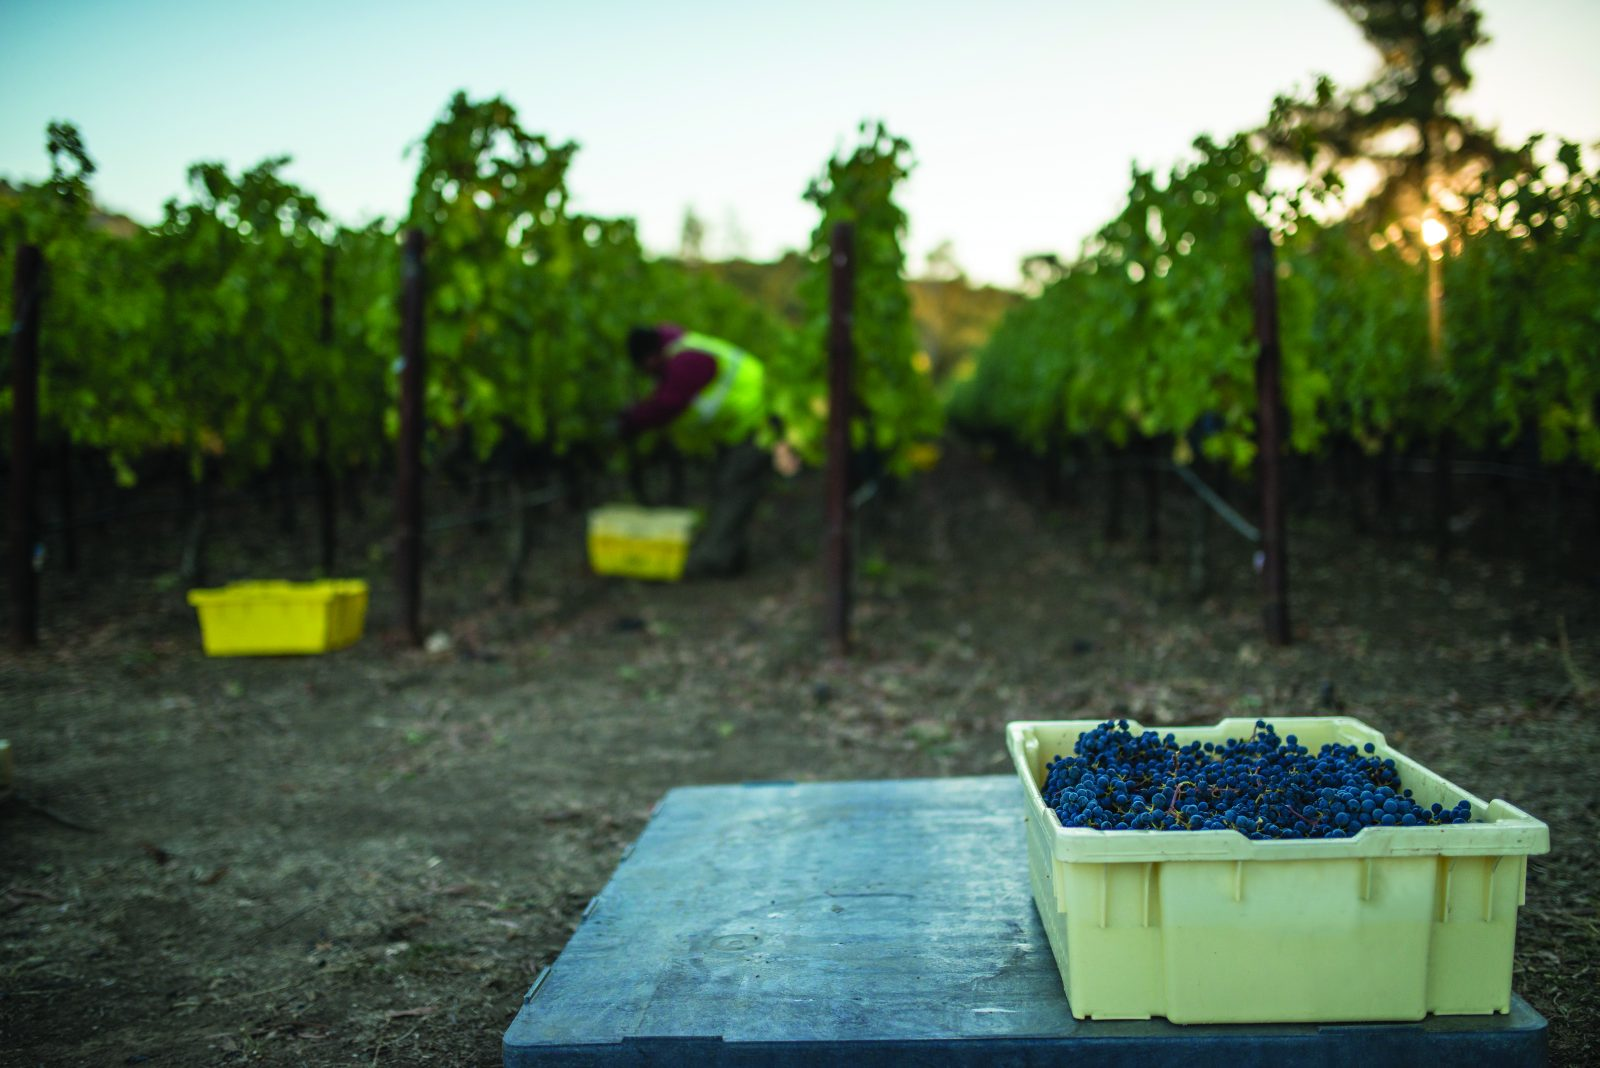 Bin of grapes with farmworker harvesting in background vineyards